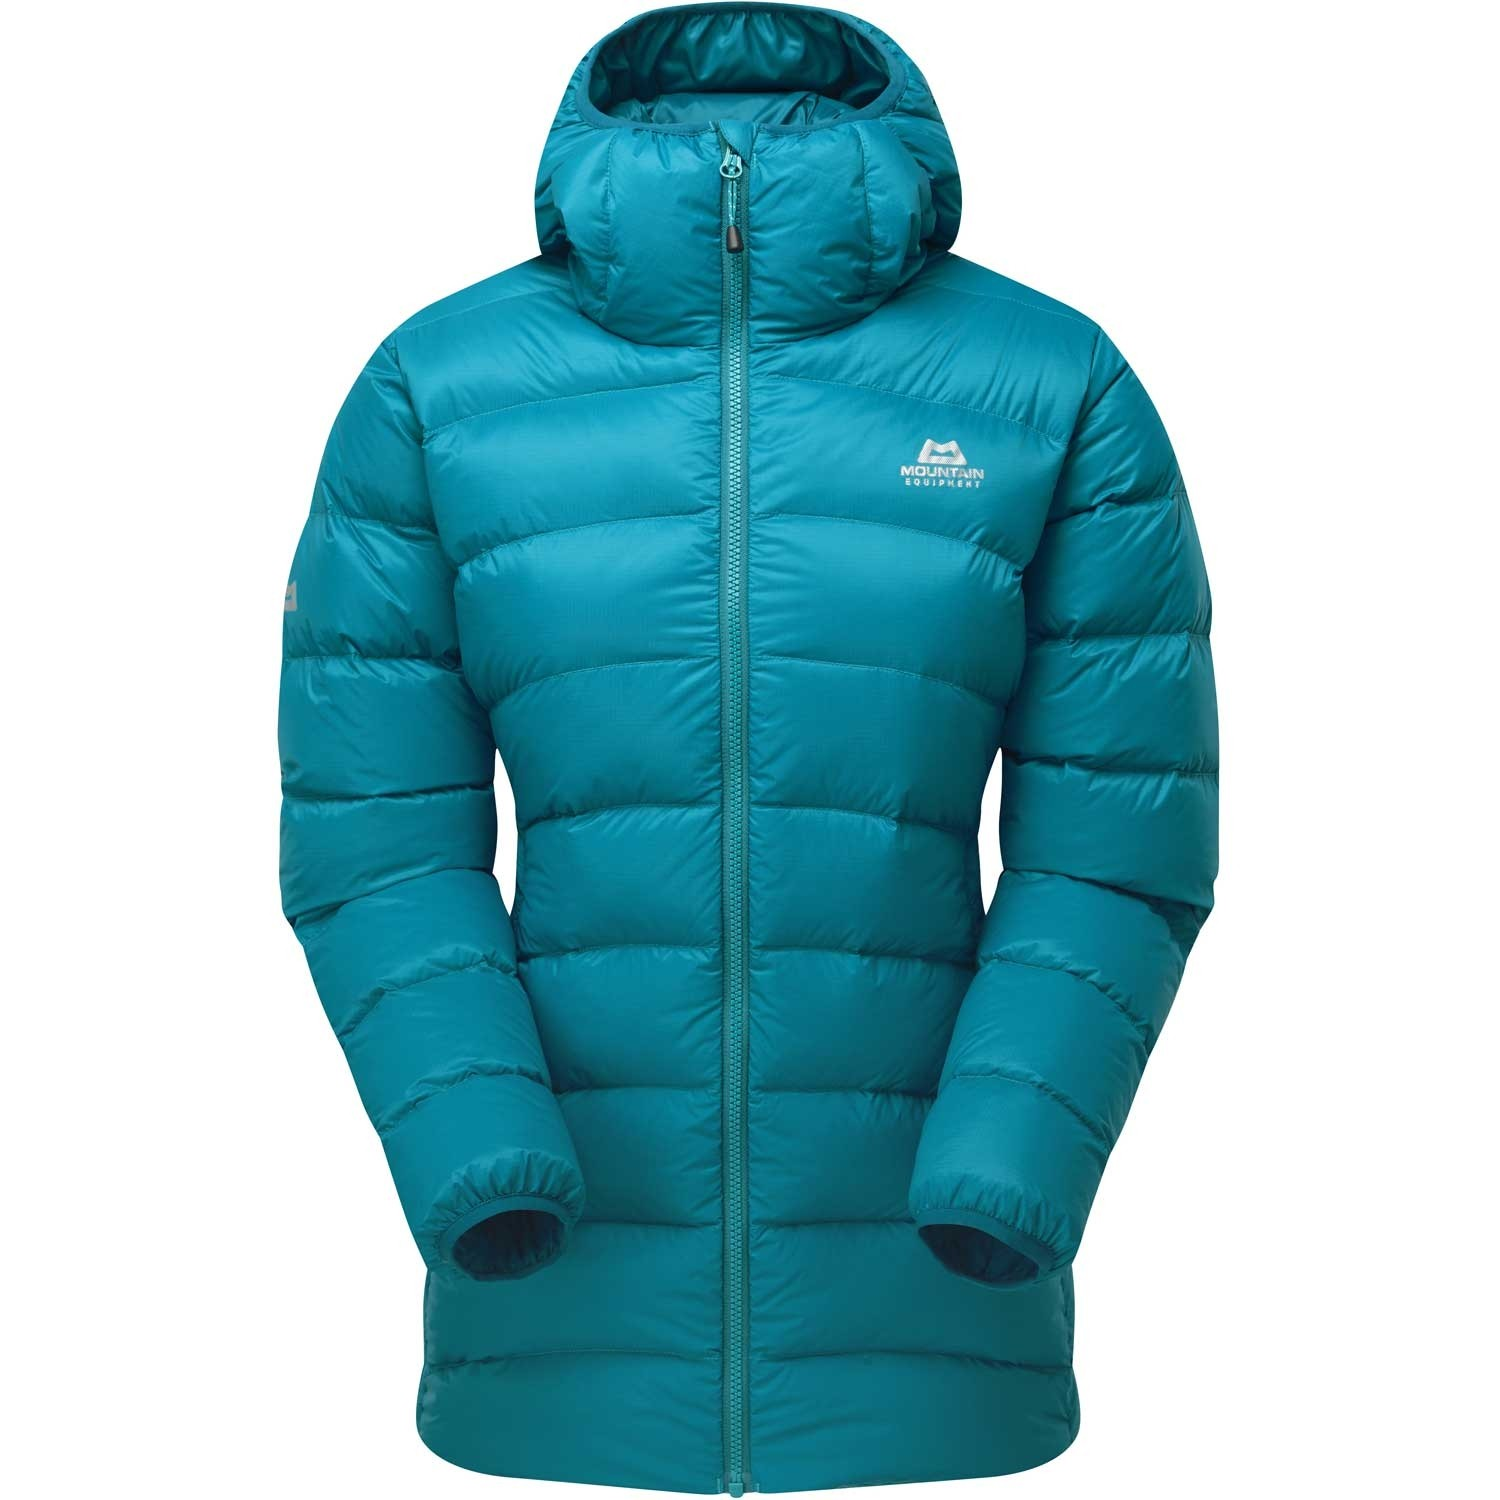 Mountain Equipment Skyline Down Jacket - Women's - Tasman Blue